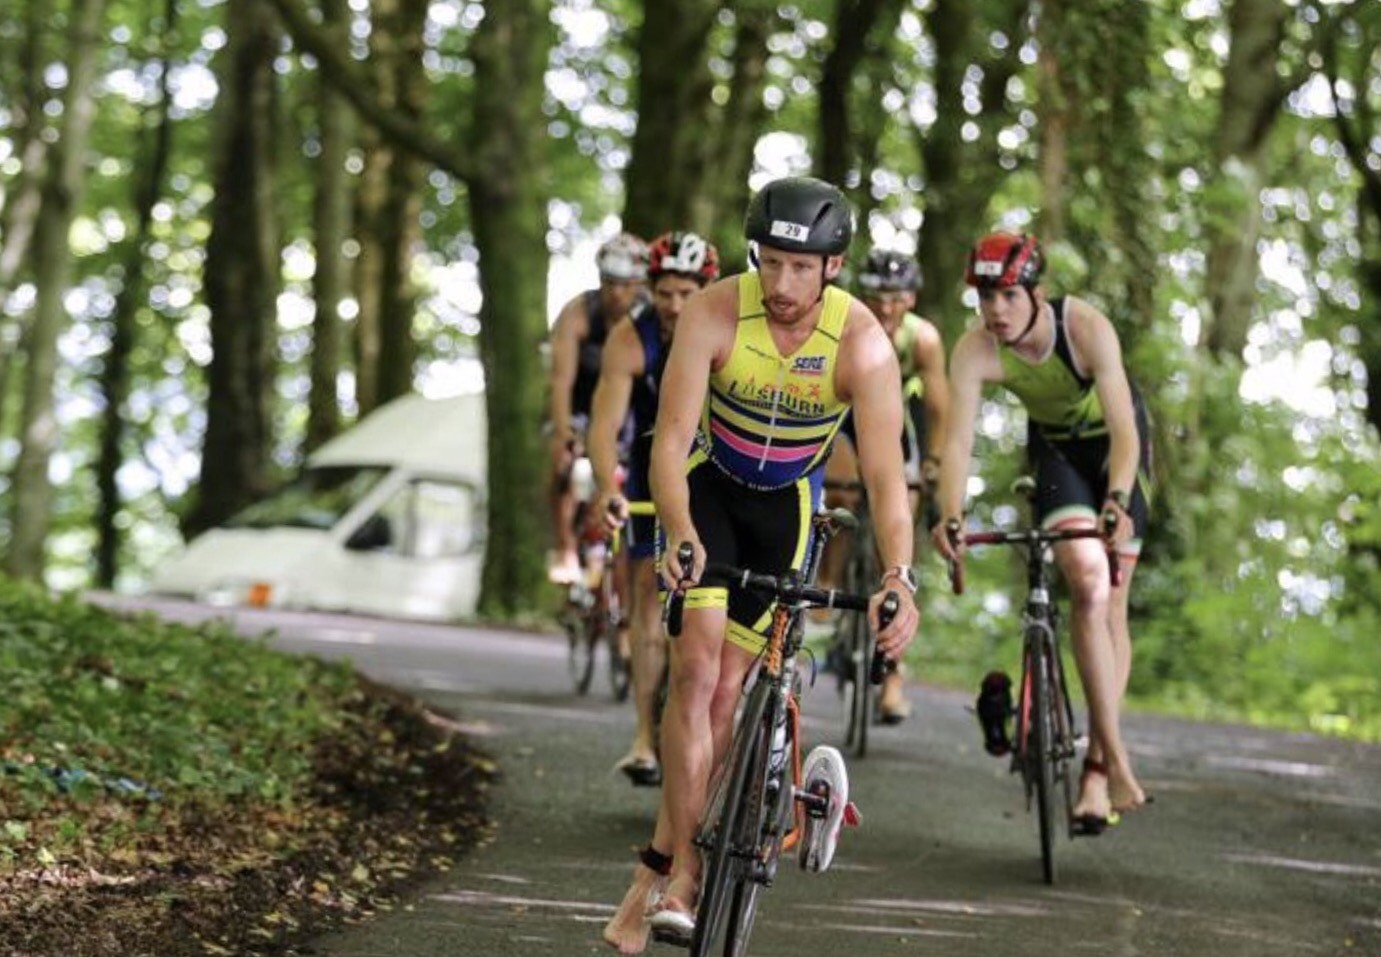 Michael competing in Triathlon Ireland Category 1 races